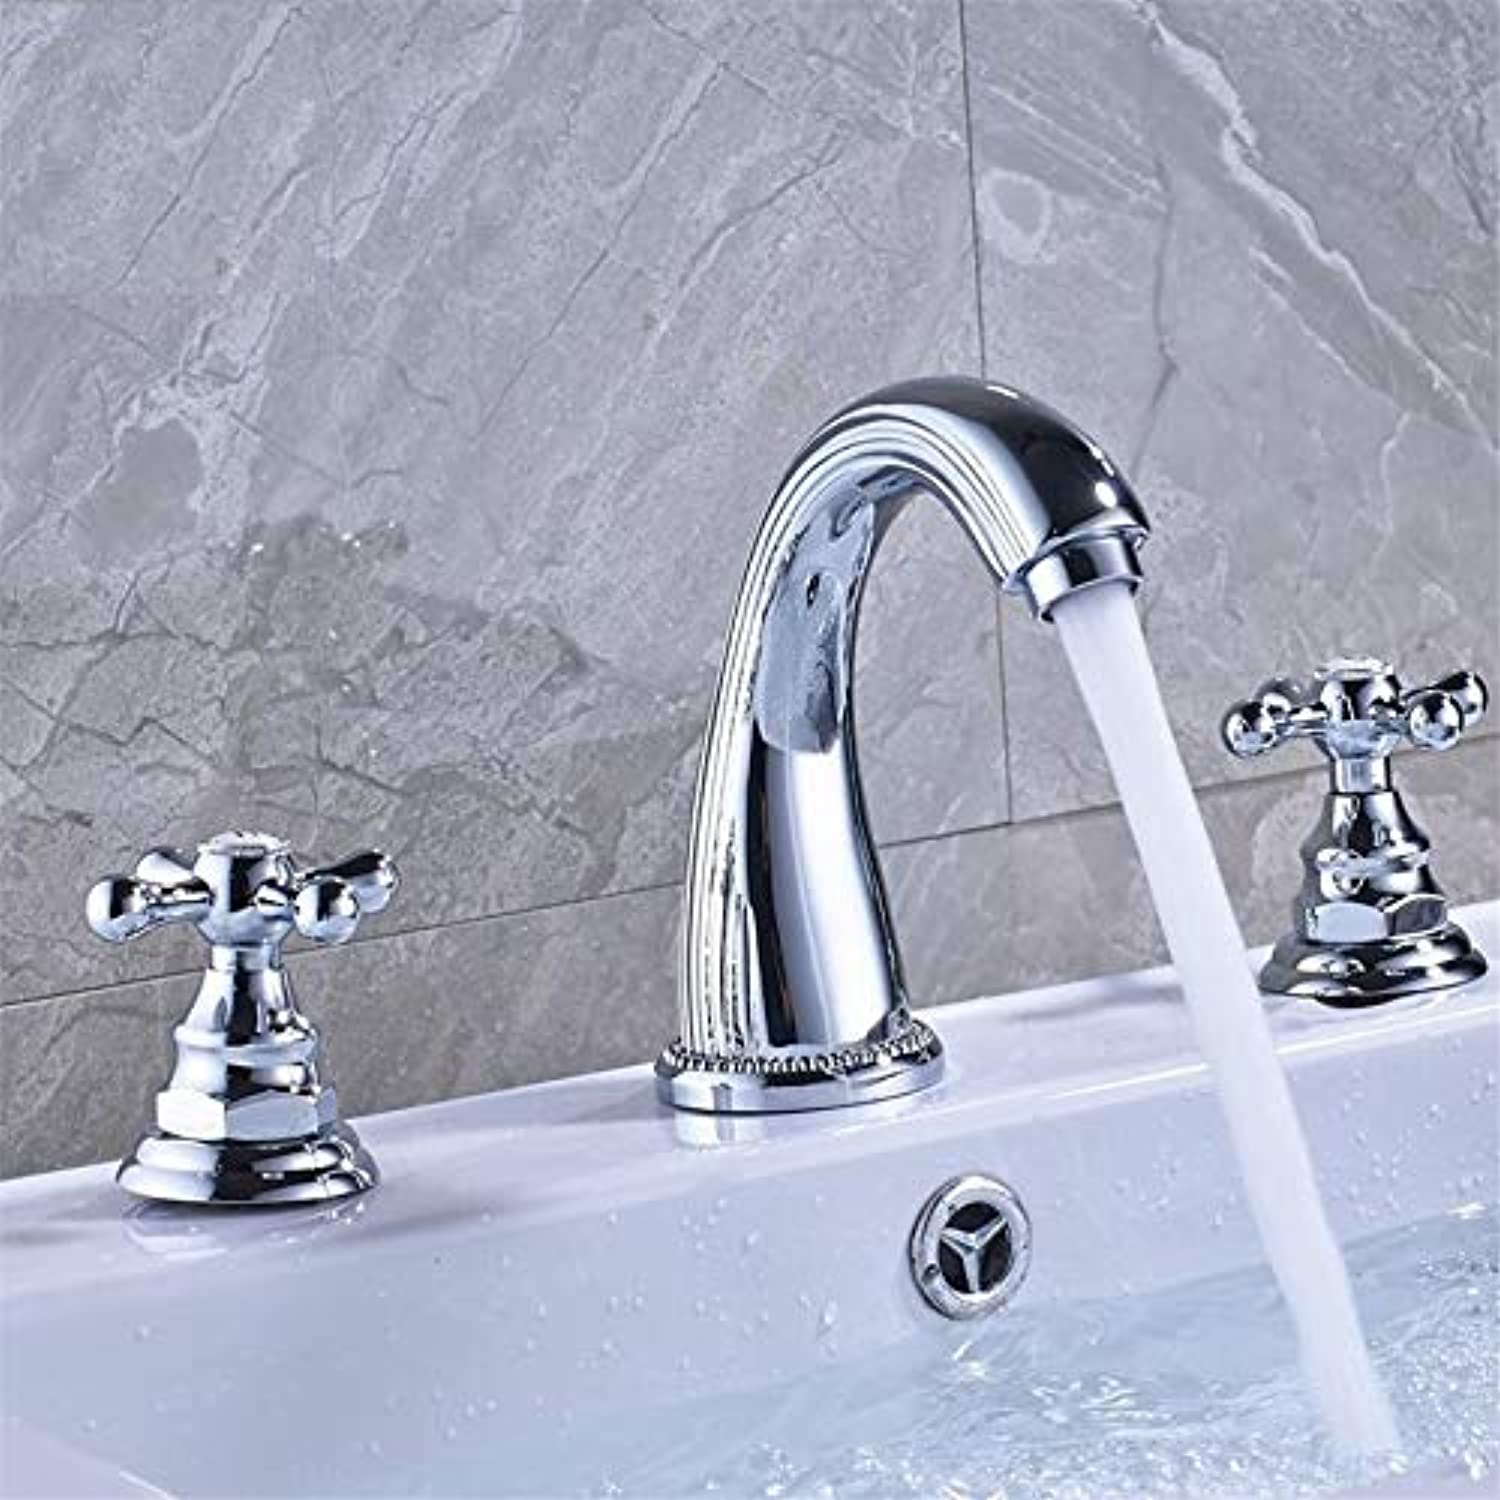 Faucet Basin Faucetbright Chrome Dual Handle Bathroom Mixer Faucet Deck Mounted 3 Install Holes Hot and Cold Water Lavatory Sink Taps